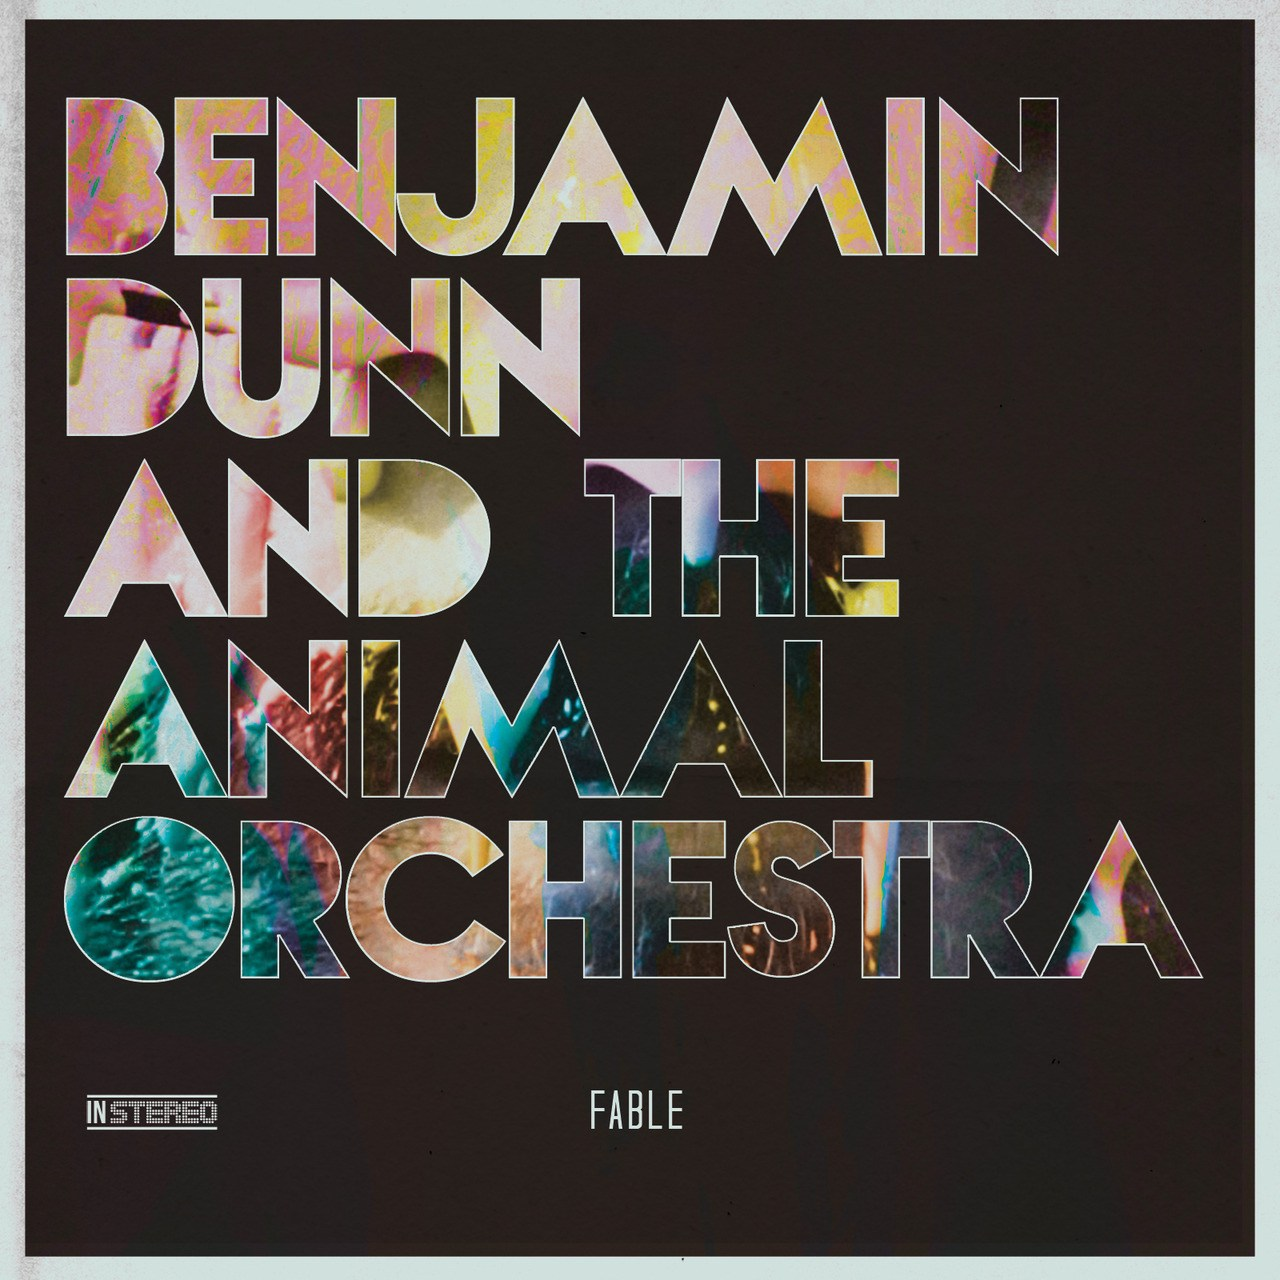 Free Christian Music Download of Benjamin Dunn And The Animal Orchestra song MY NAME IS EUSTACE